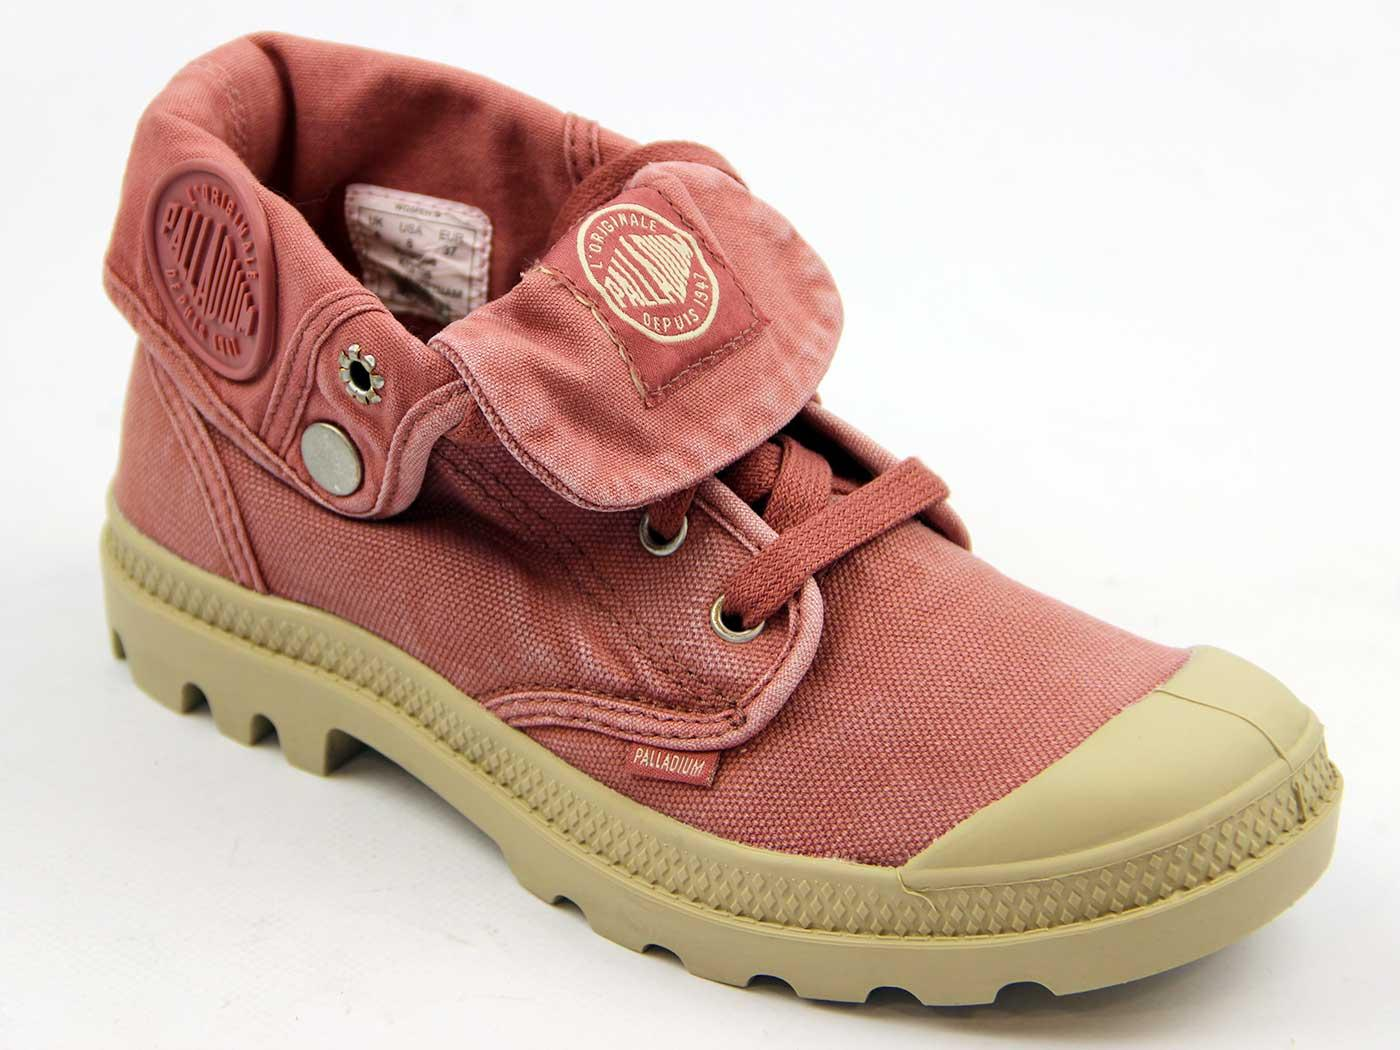 Baggy Low PALLADIUM Womens Retro Canvas Boots F/P